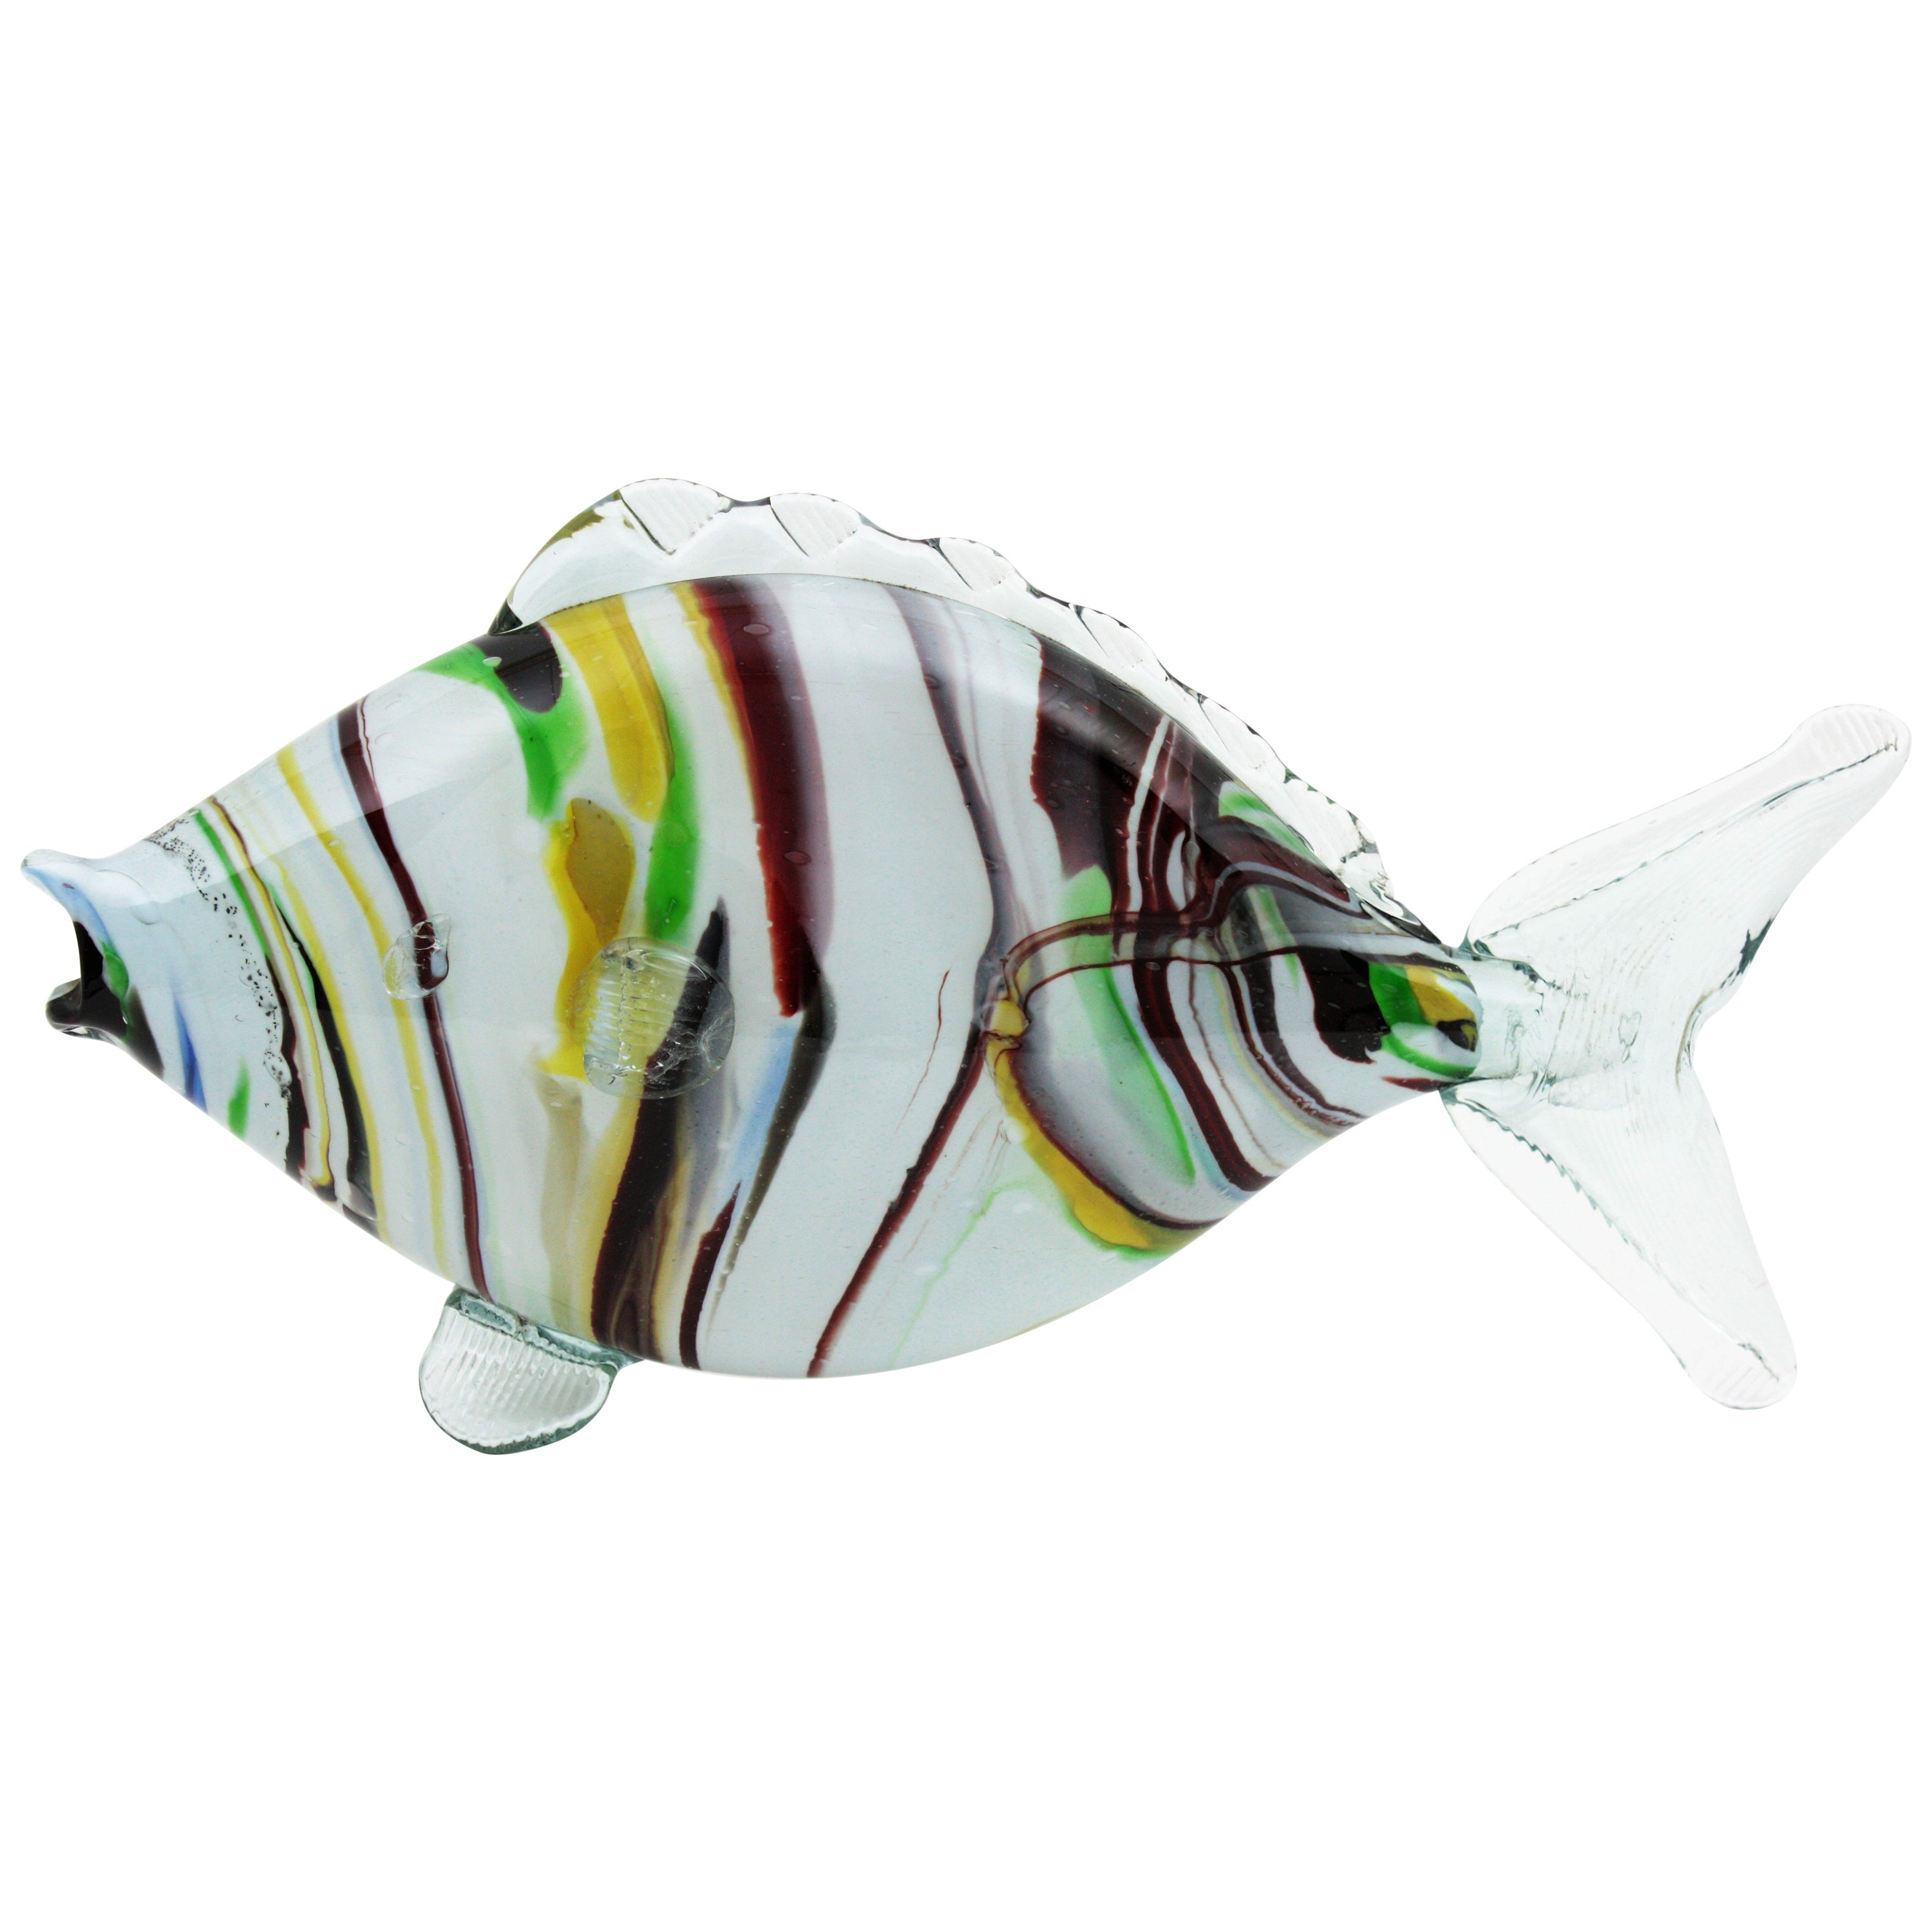 Medium Scale Murano Blown Glass Fish Sculpture with Colorful Stripes